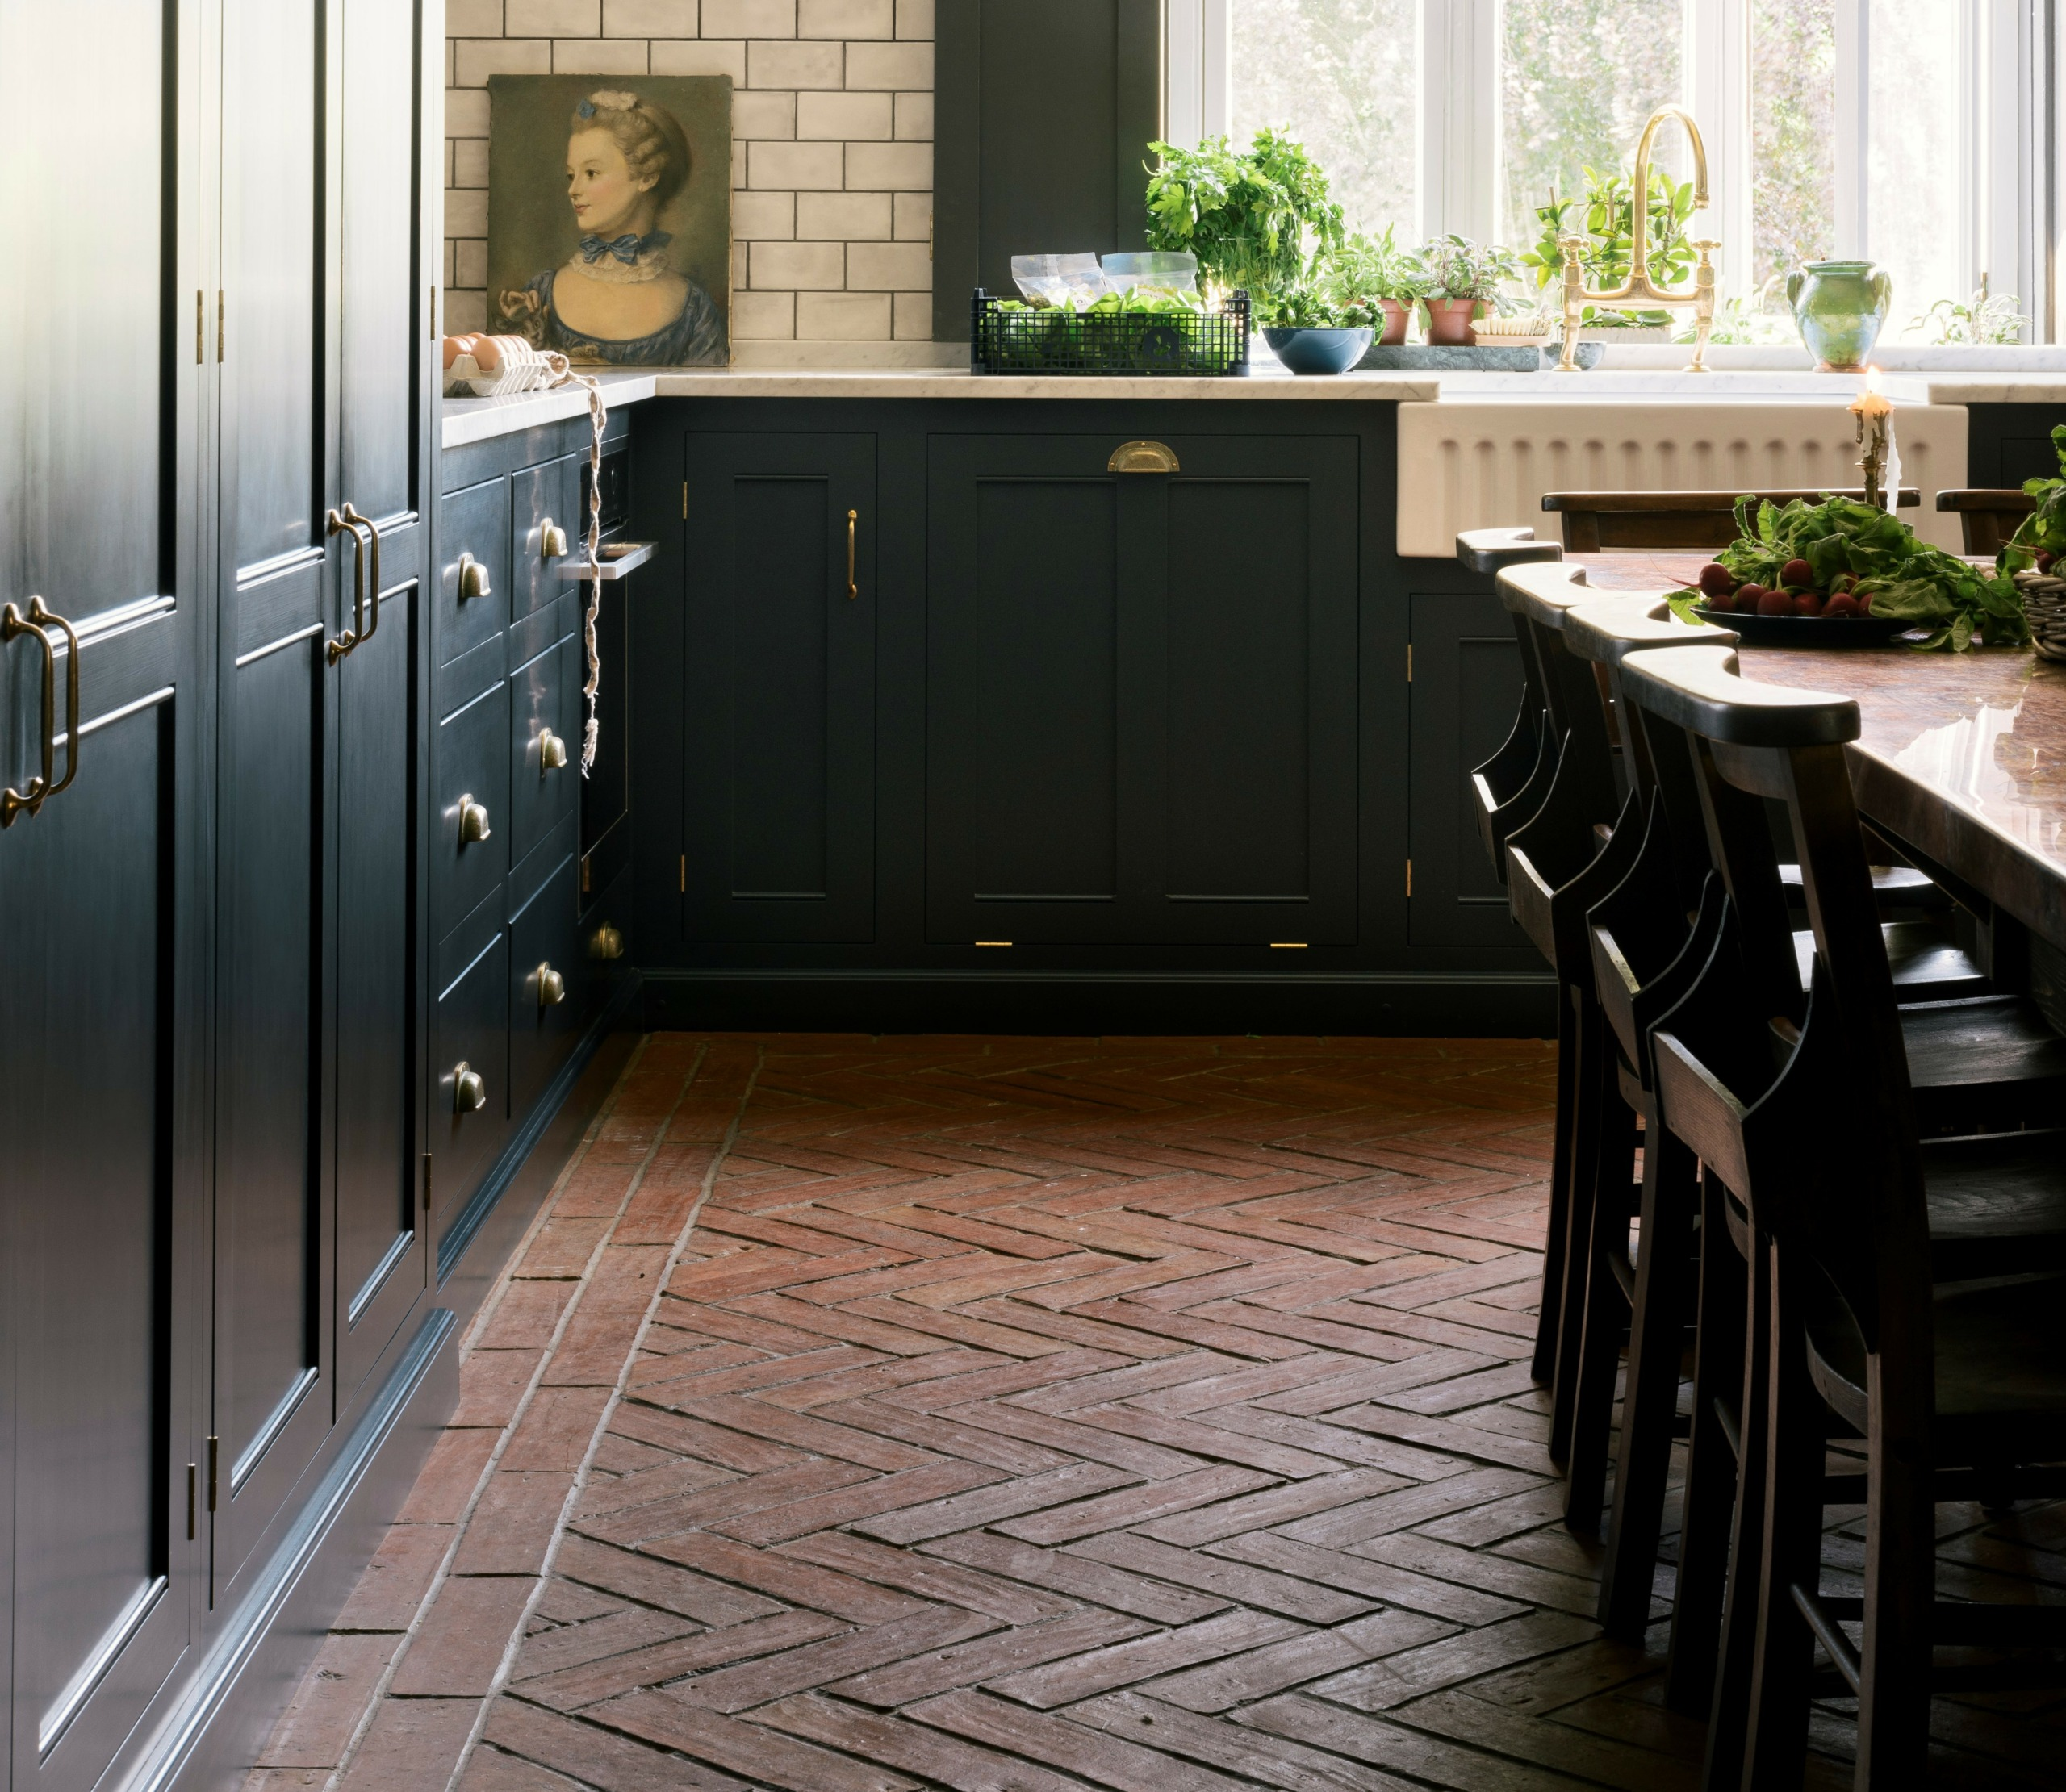 Top kitchen ideas and trends for 20 – Which News